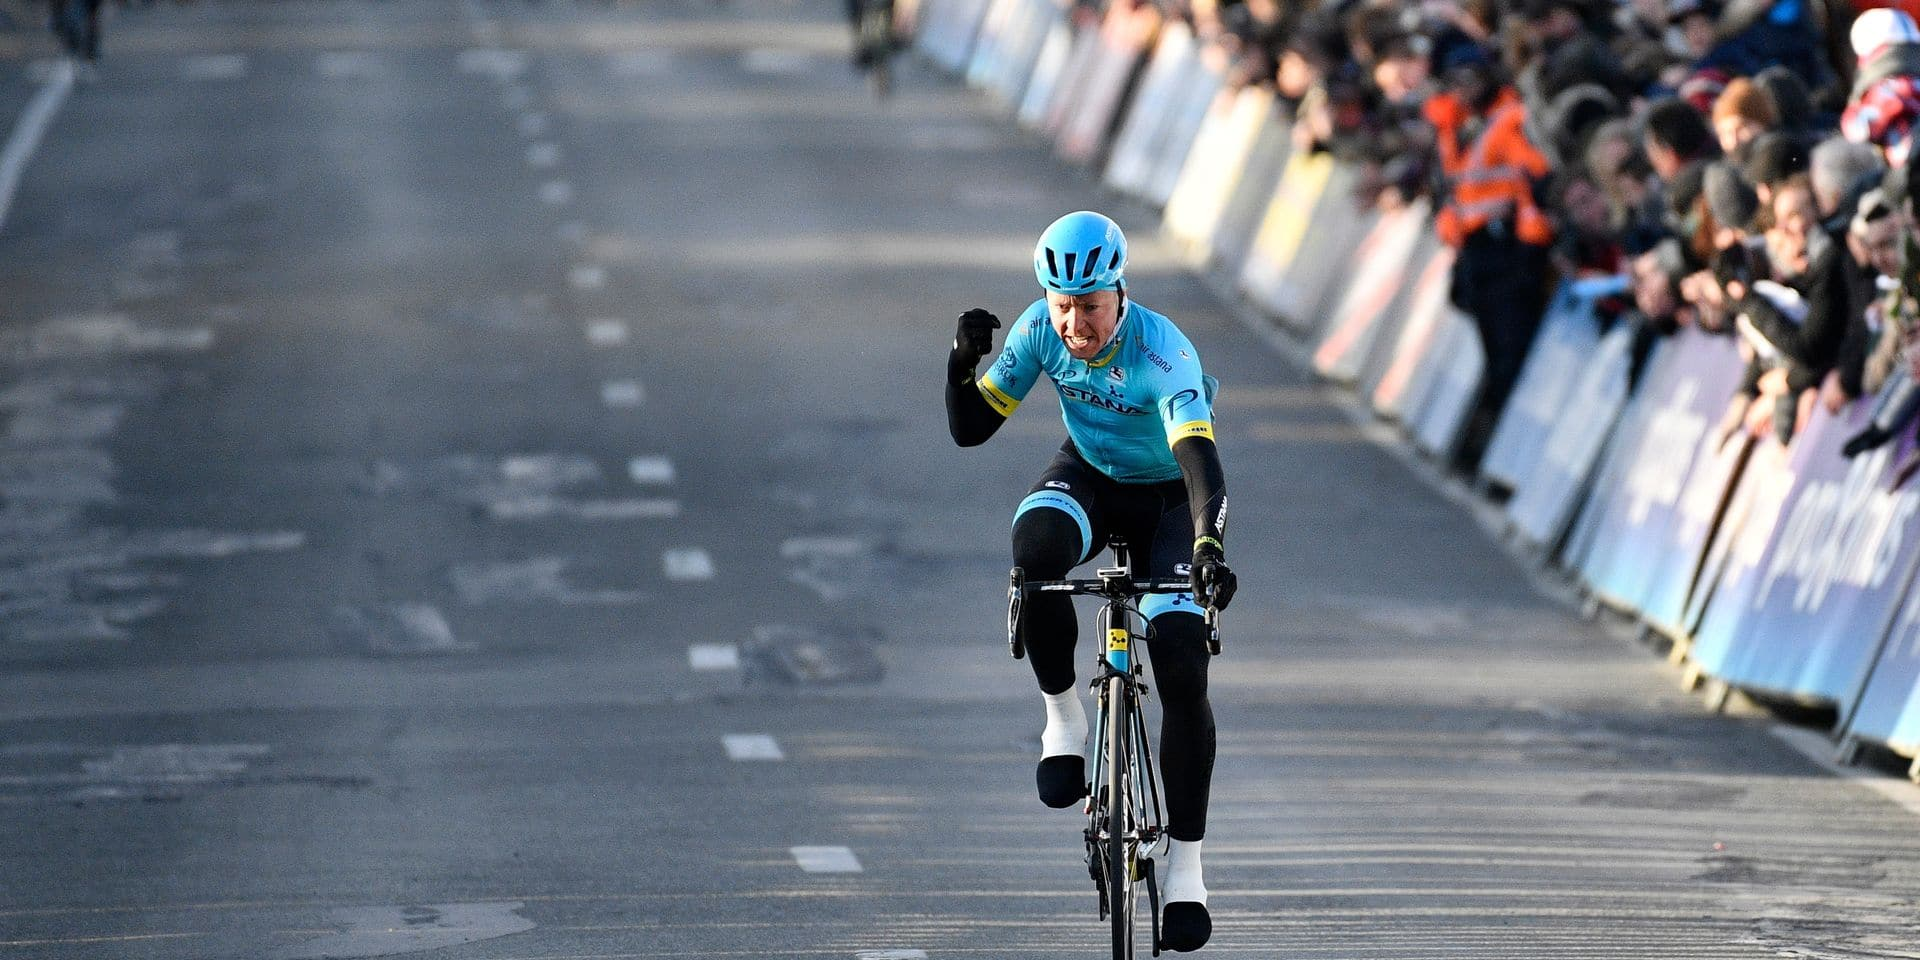 Danish Michael Valgren Andersen of Astana Pro Team celebrates as he crosses the finish line to win the Men's 2018 edition of the one-day cycling race Omloop Het Nieuwsblad, 196,2 km from Ghent to Ninove, Saturday 24 February 2018. BELGA PHOTO YORICK JANSENS